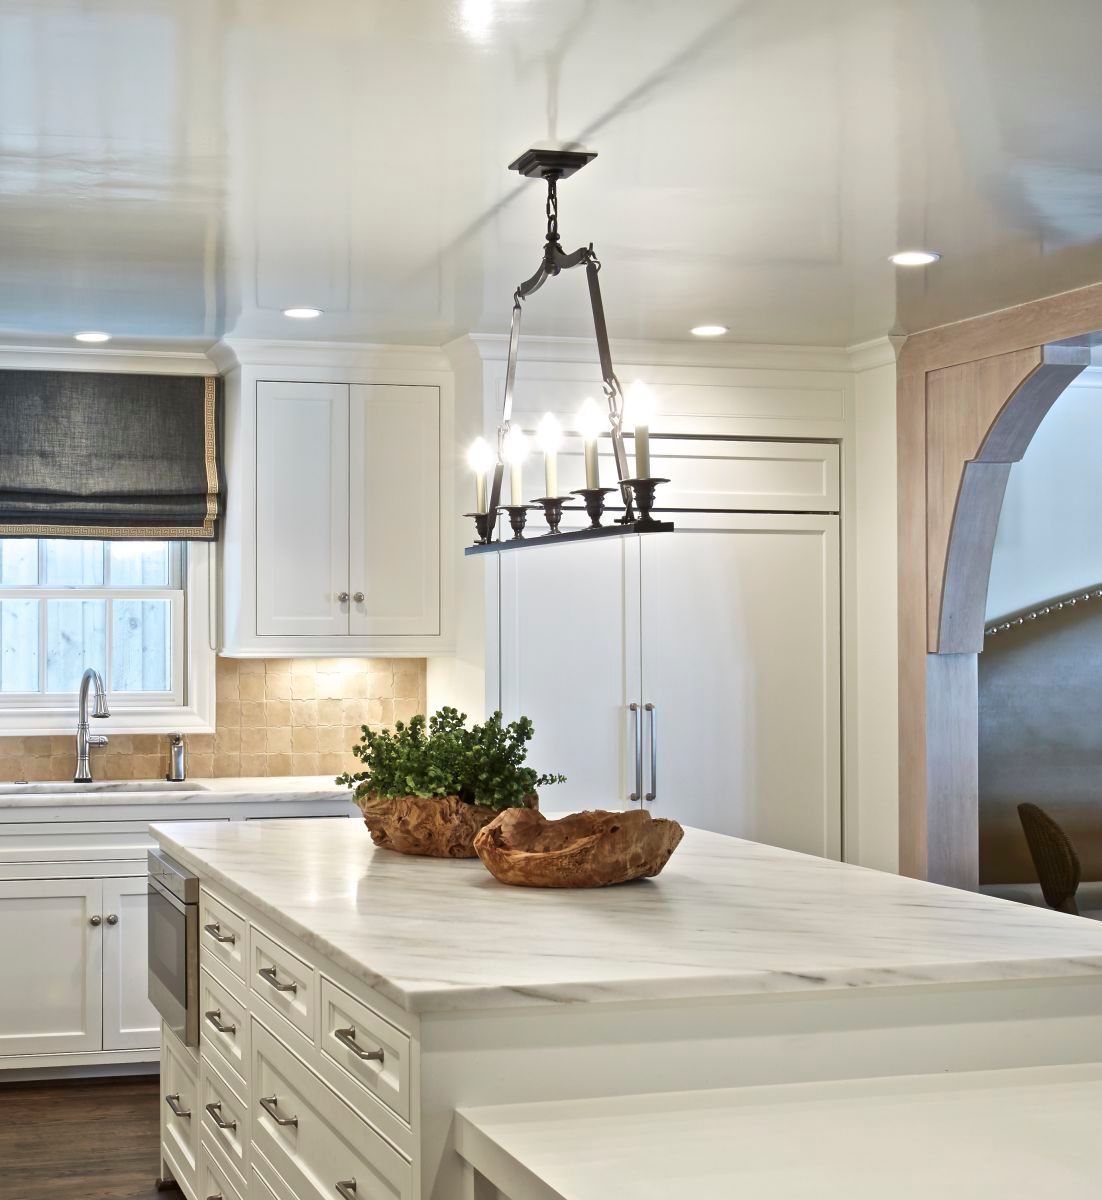 1r4504_belclaire_kitchen_counter.jpg